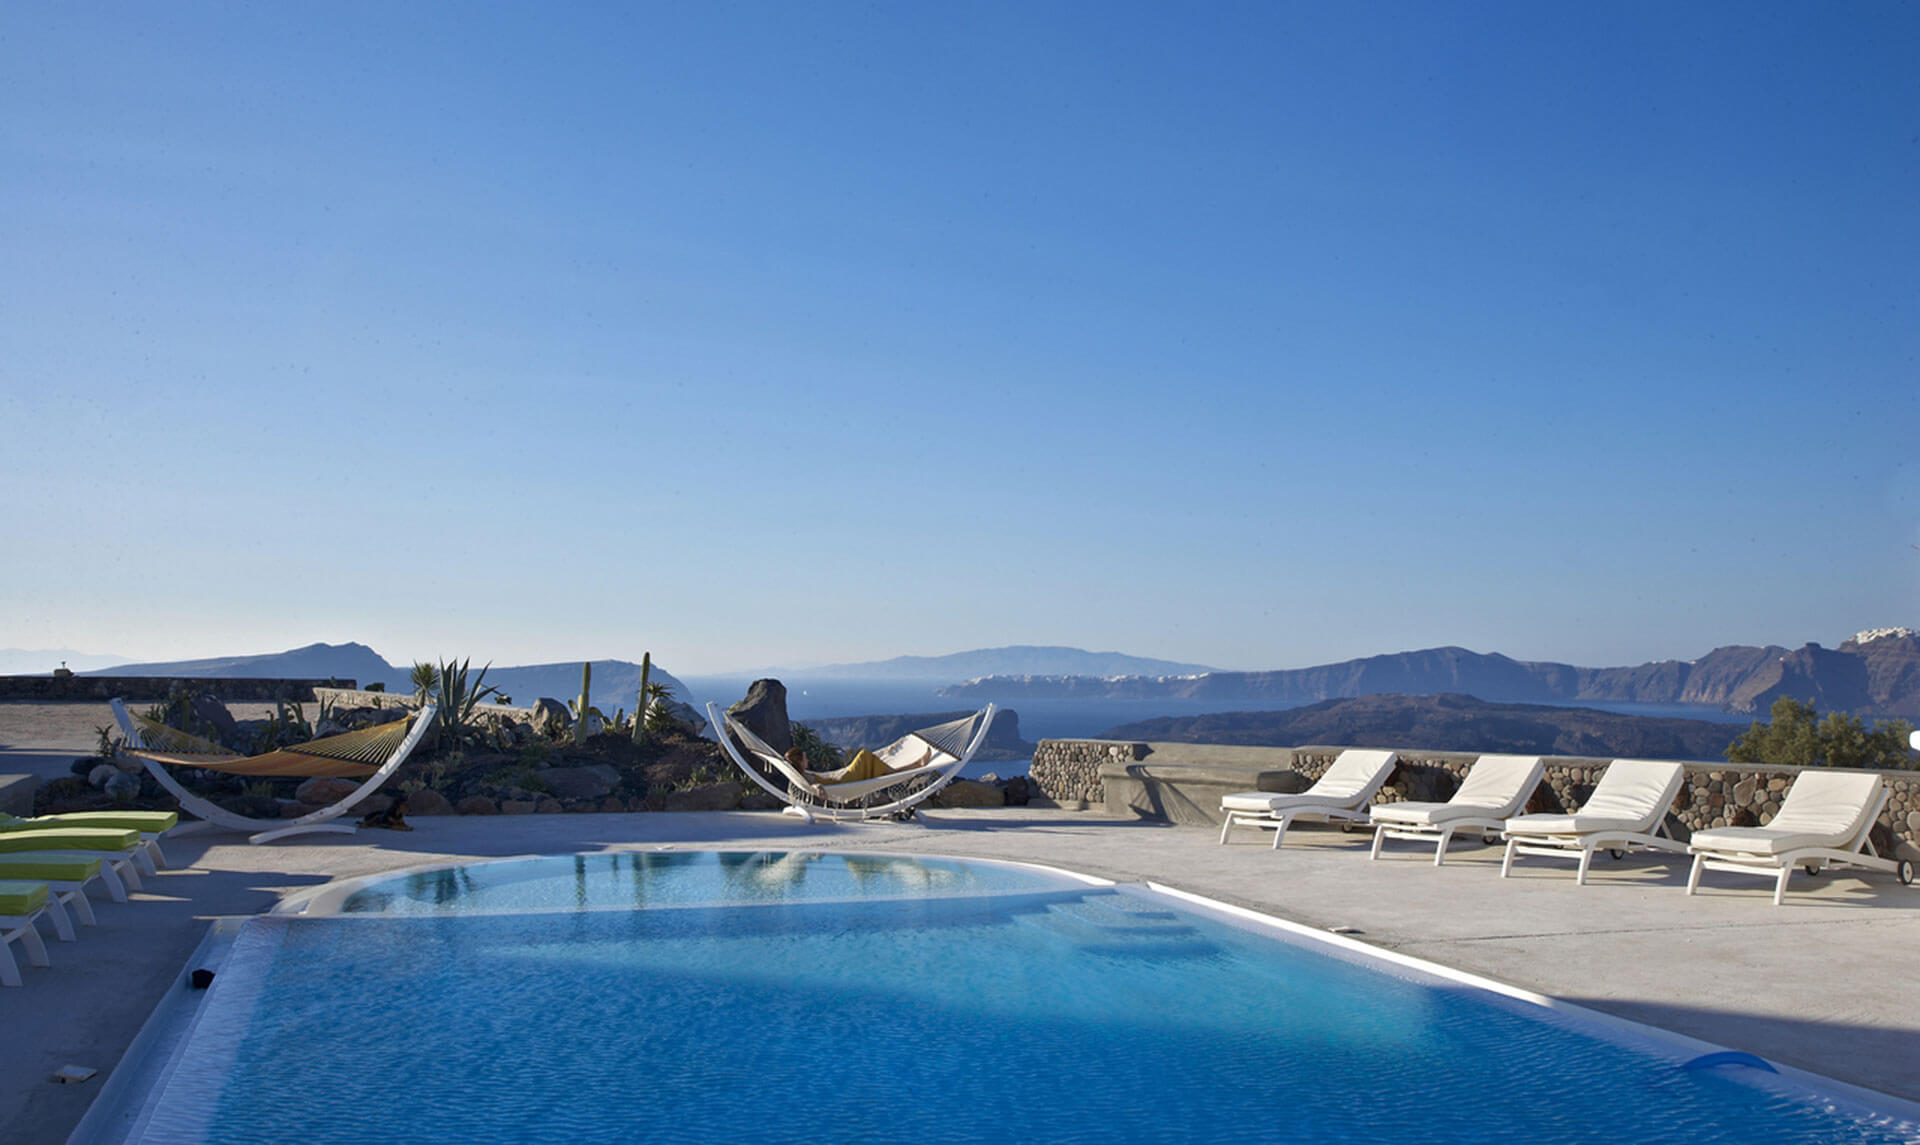 Kalestesia Suites - Panoramic caldera view from swimming pool